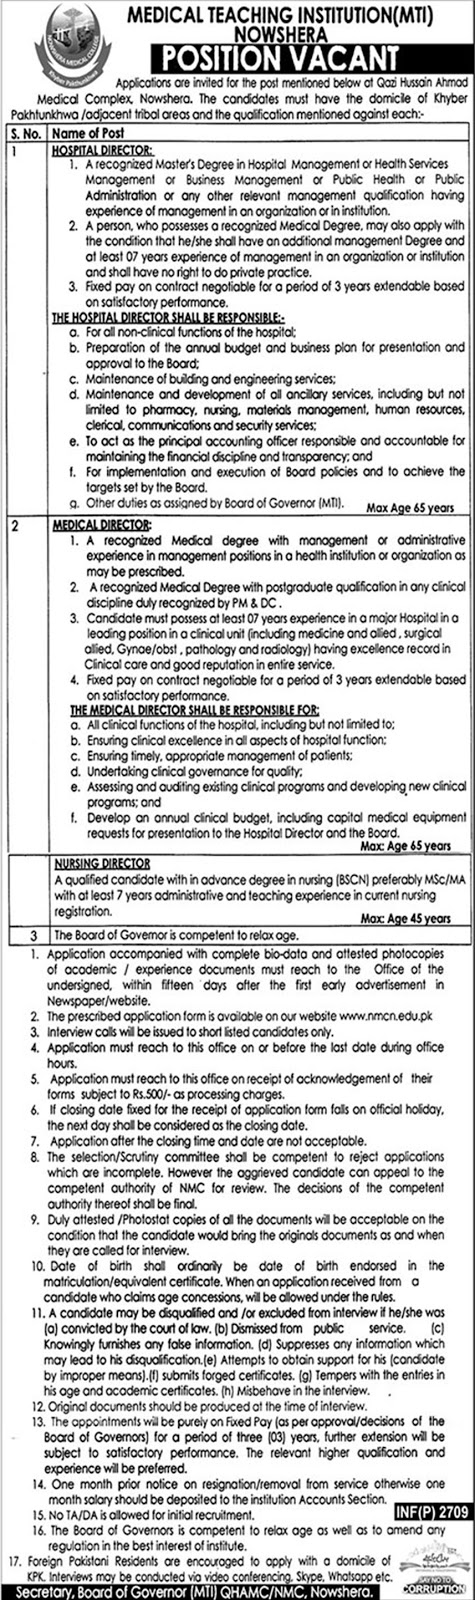 MTI Medical Teaching Institution Jobs June 2018 Another Advertisement